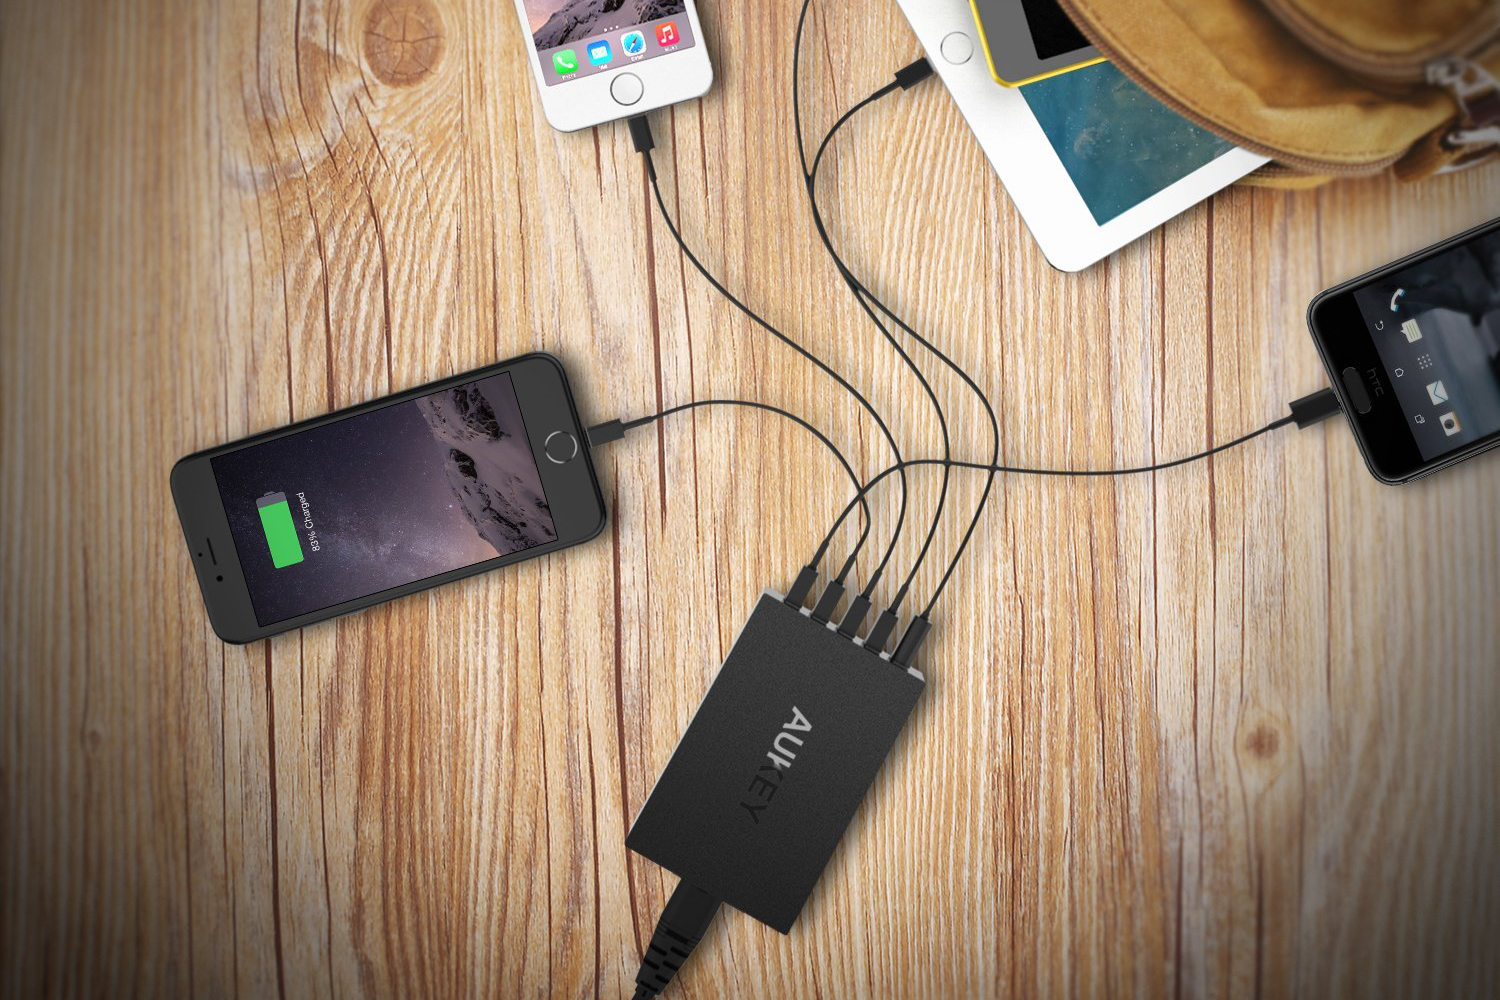 Usb Charging Hub The Best Usb Charging Hubs For Juicing All Of Your Devices